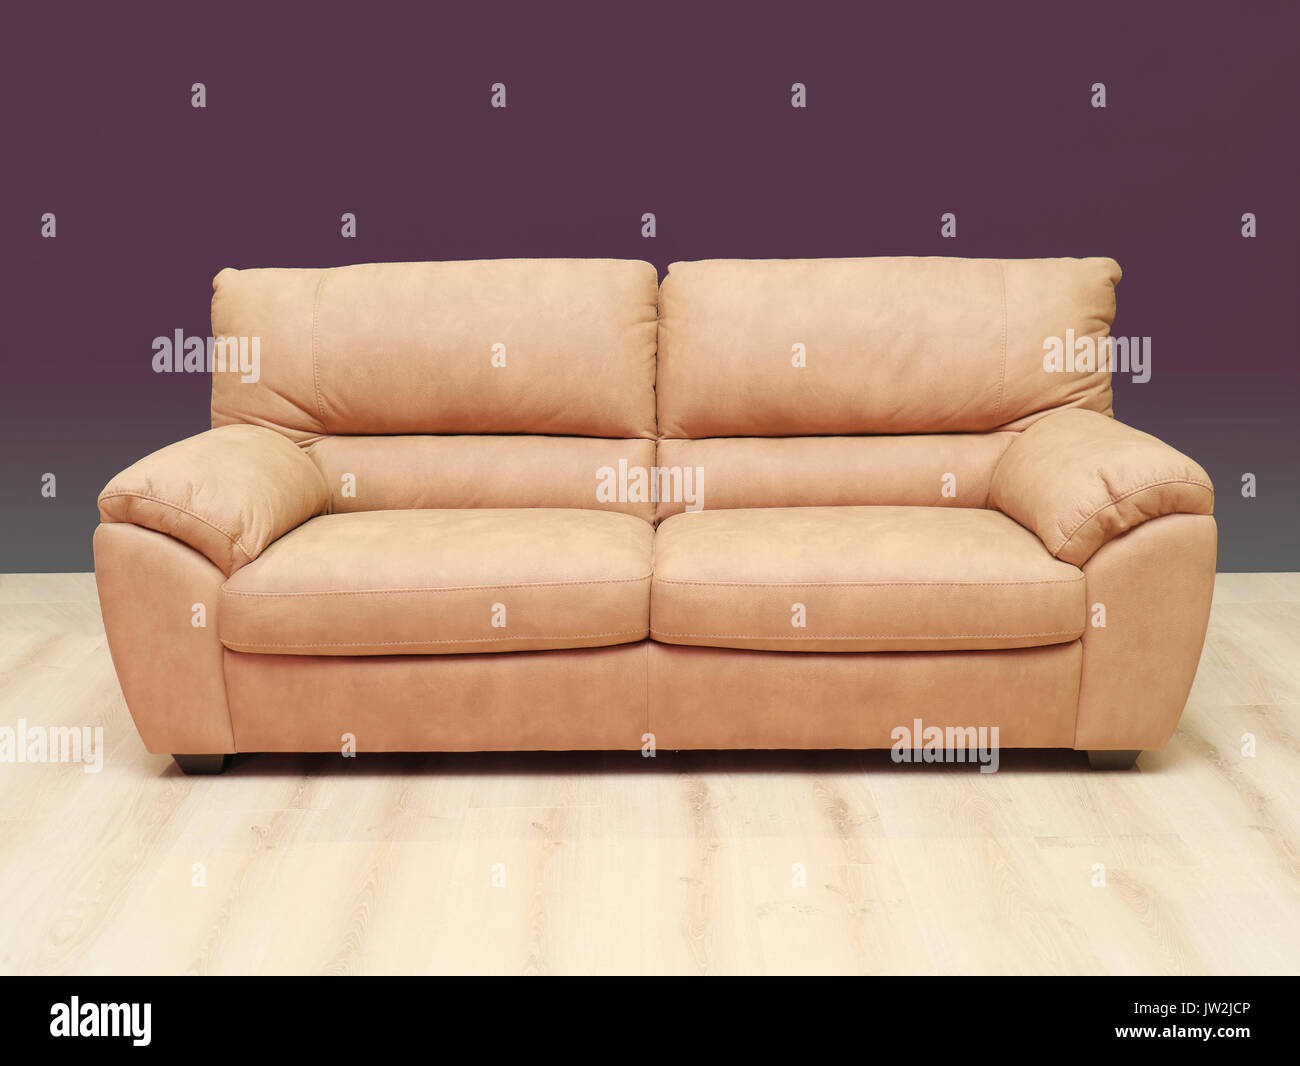 Purple Couch High Resolution Stock Photography And Images Alamy